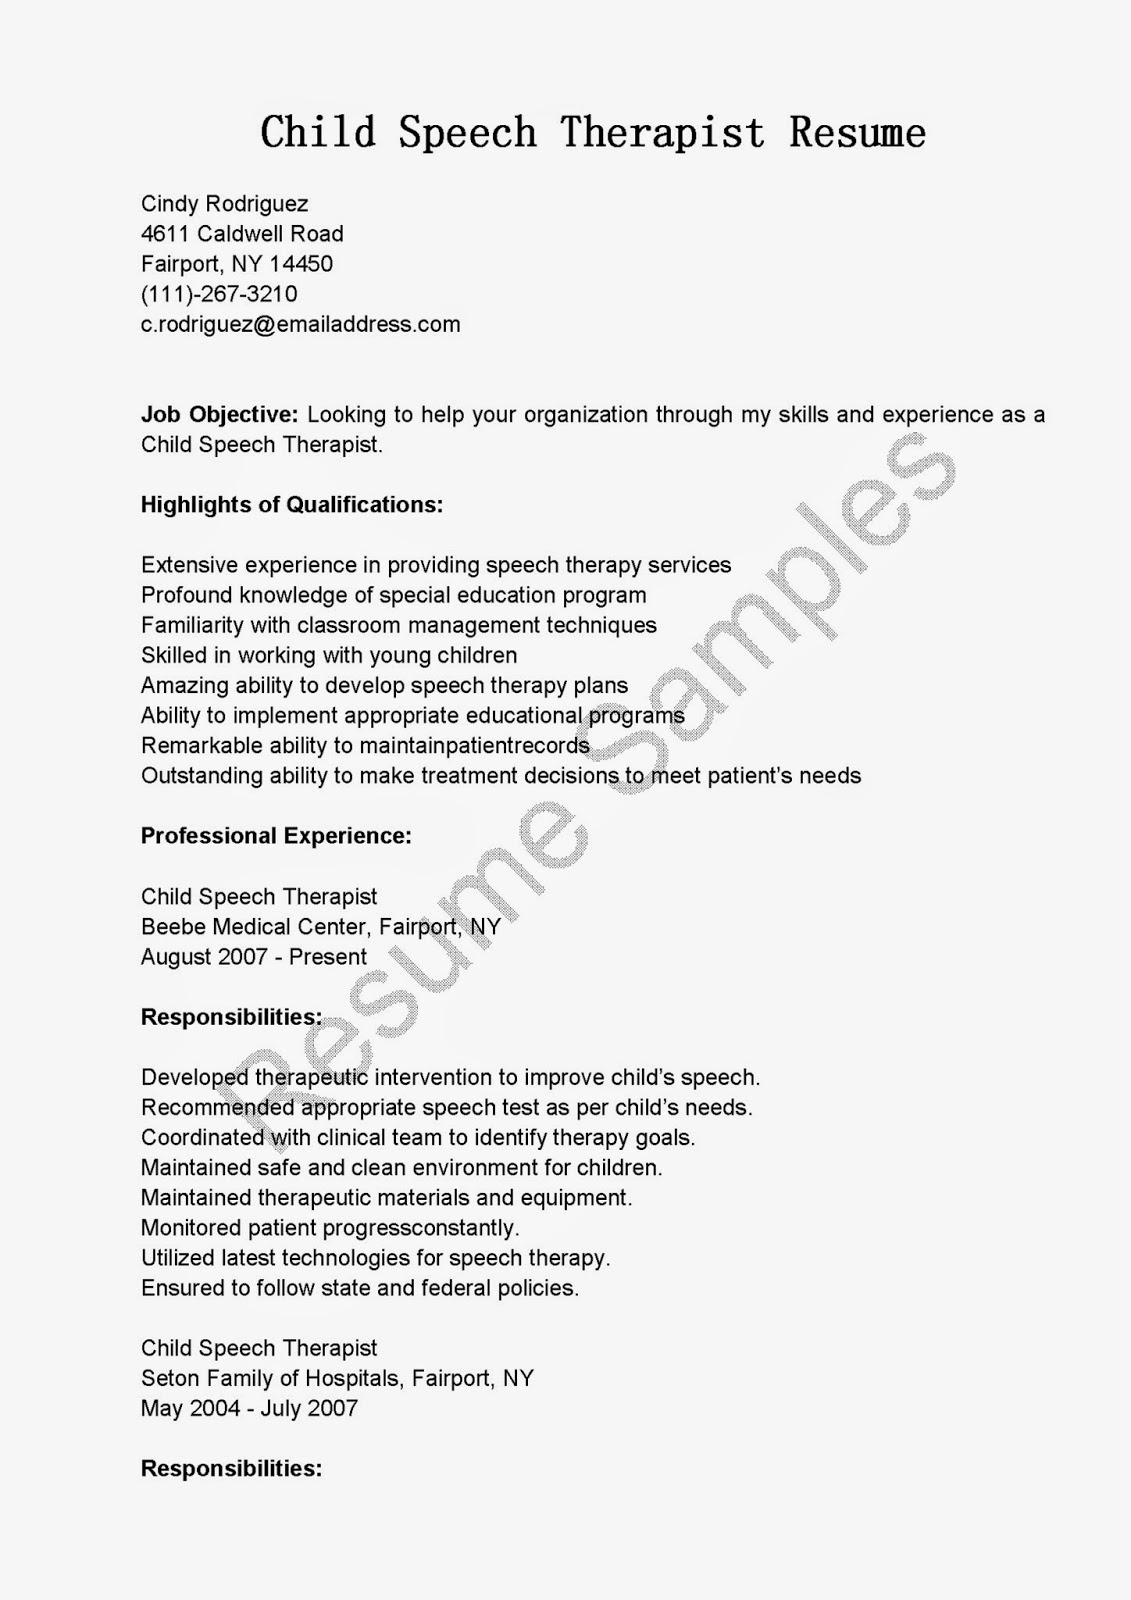 Free Massage Therapist Resume Templates Massage Therapist Resume Sample  Sample Massage Therapist Resume